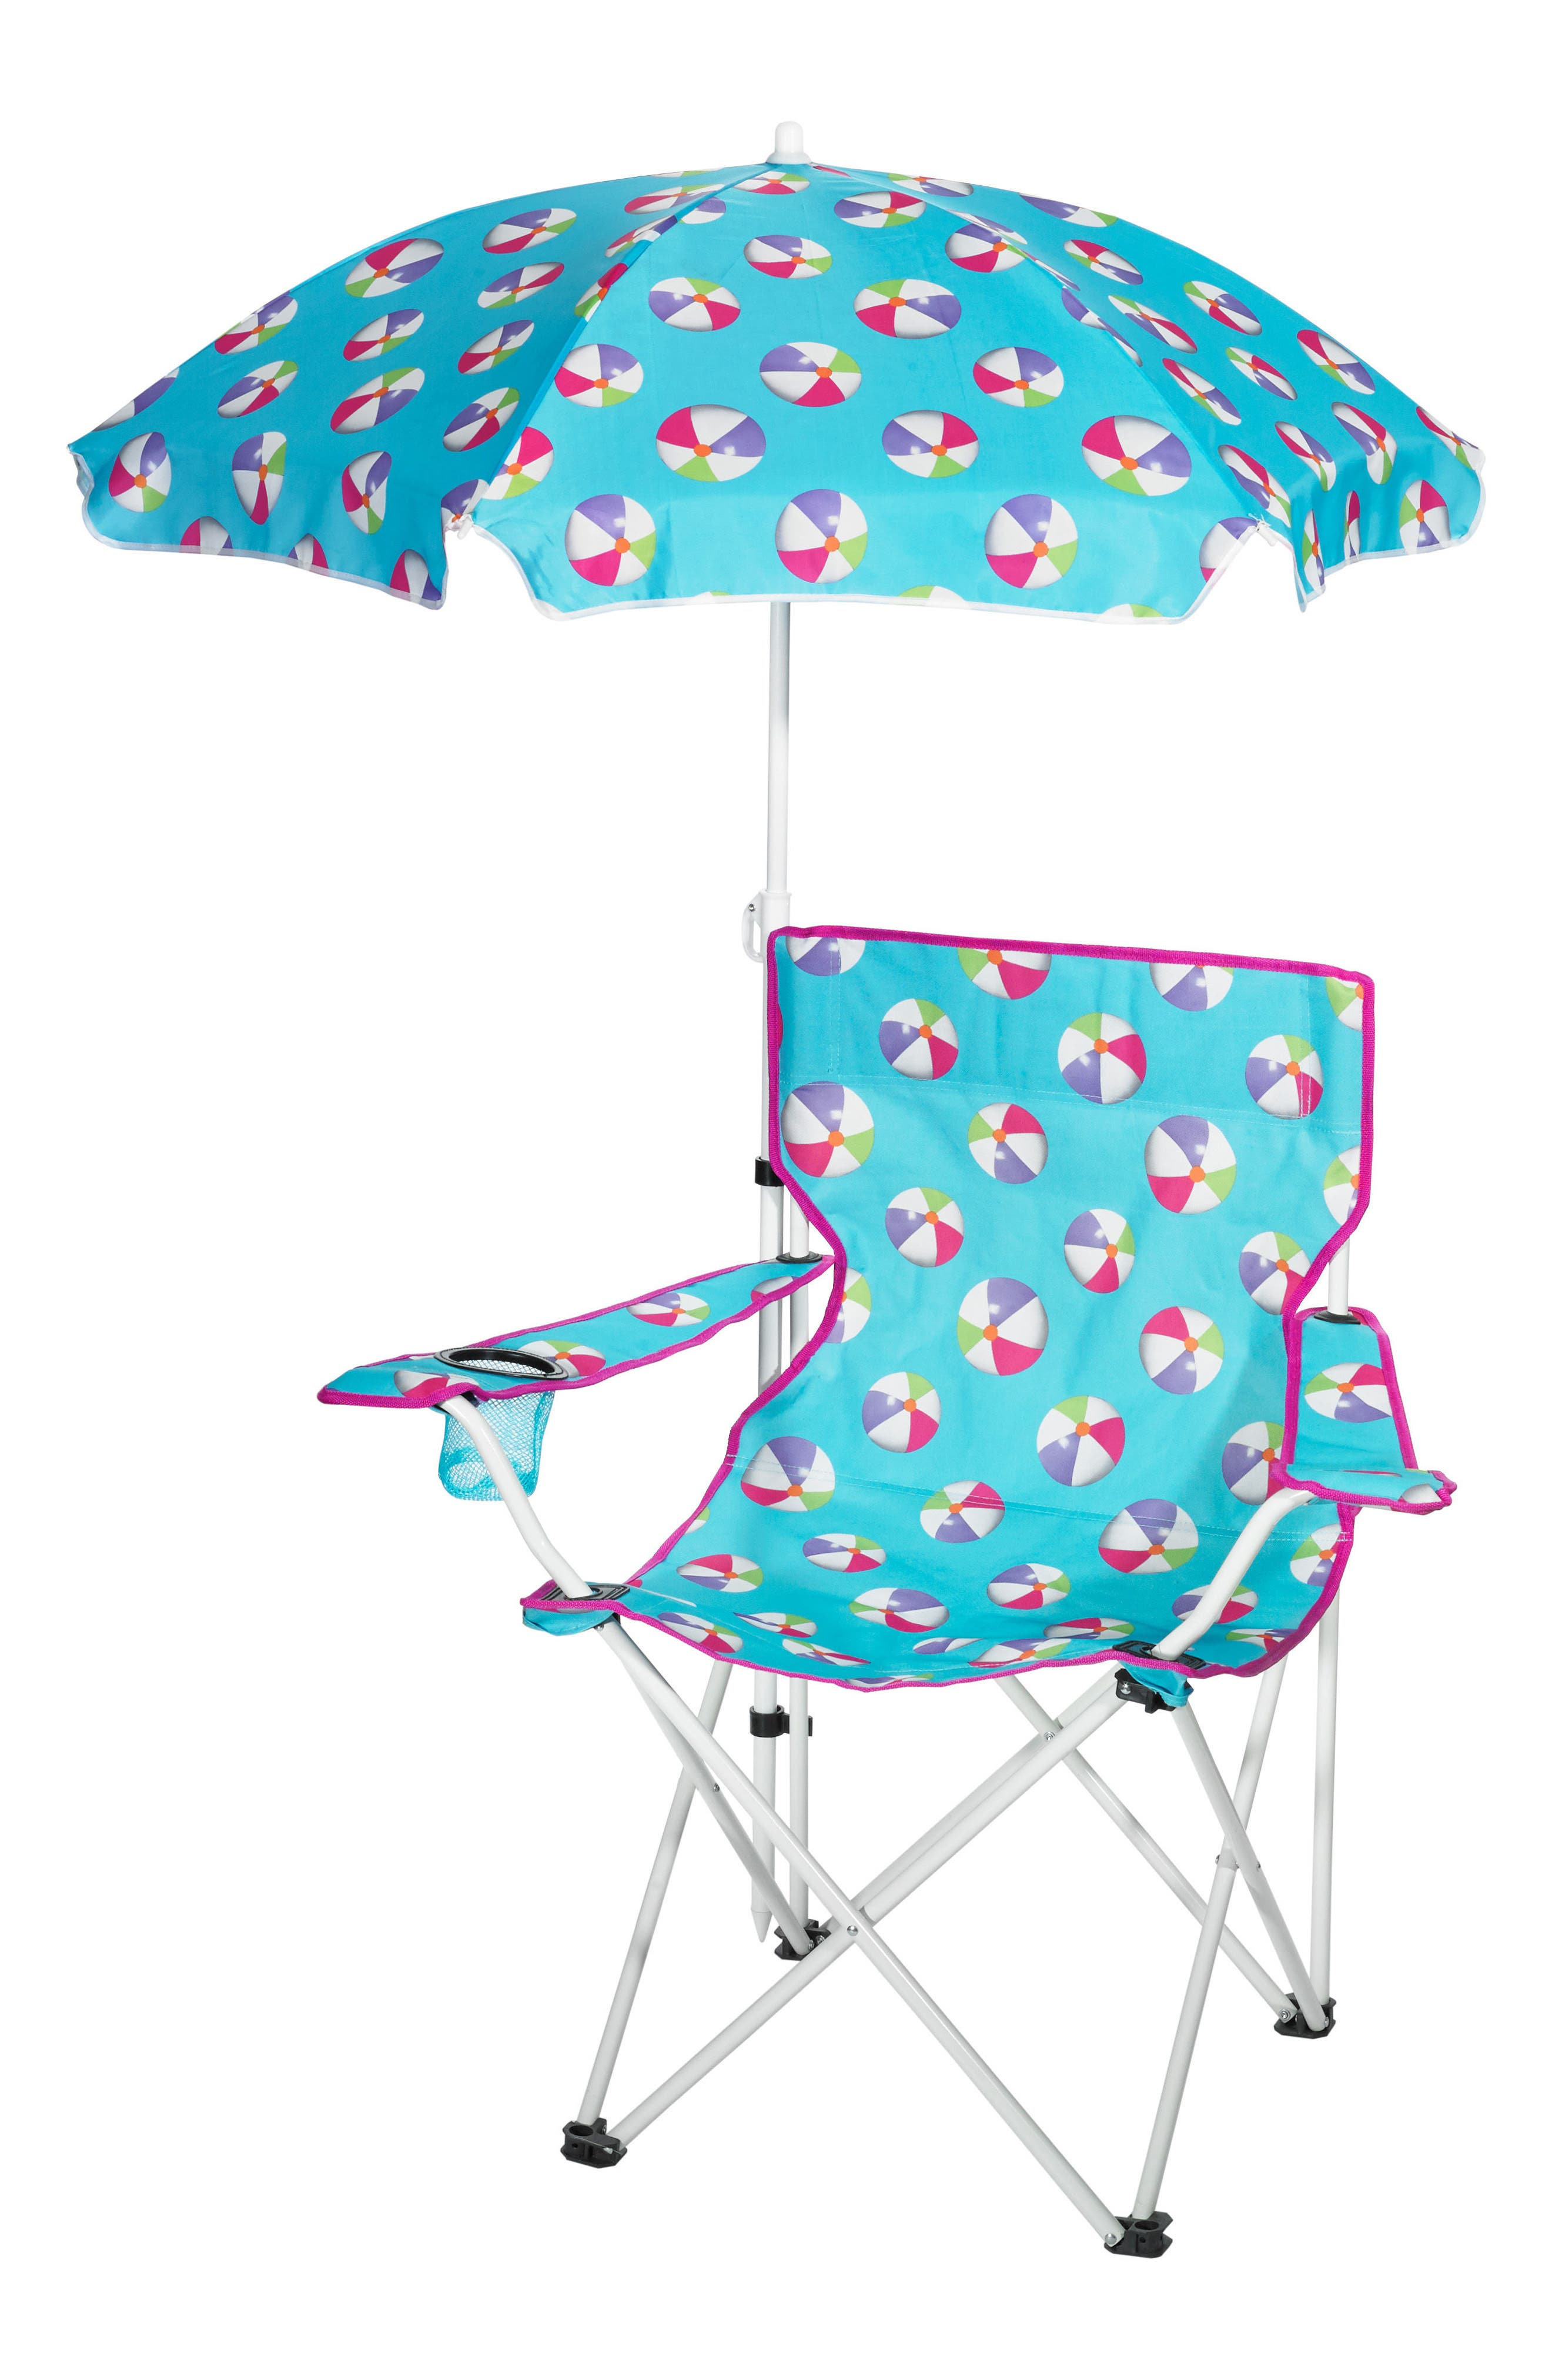 3c4g Umbrella Beach Chair Kids Nordstrom